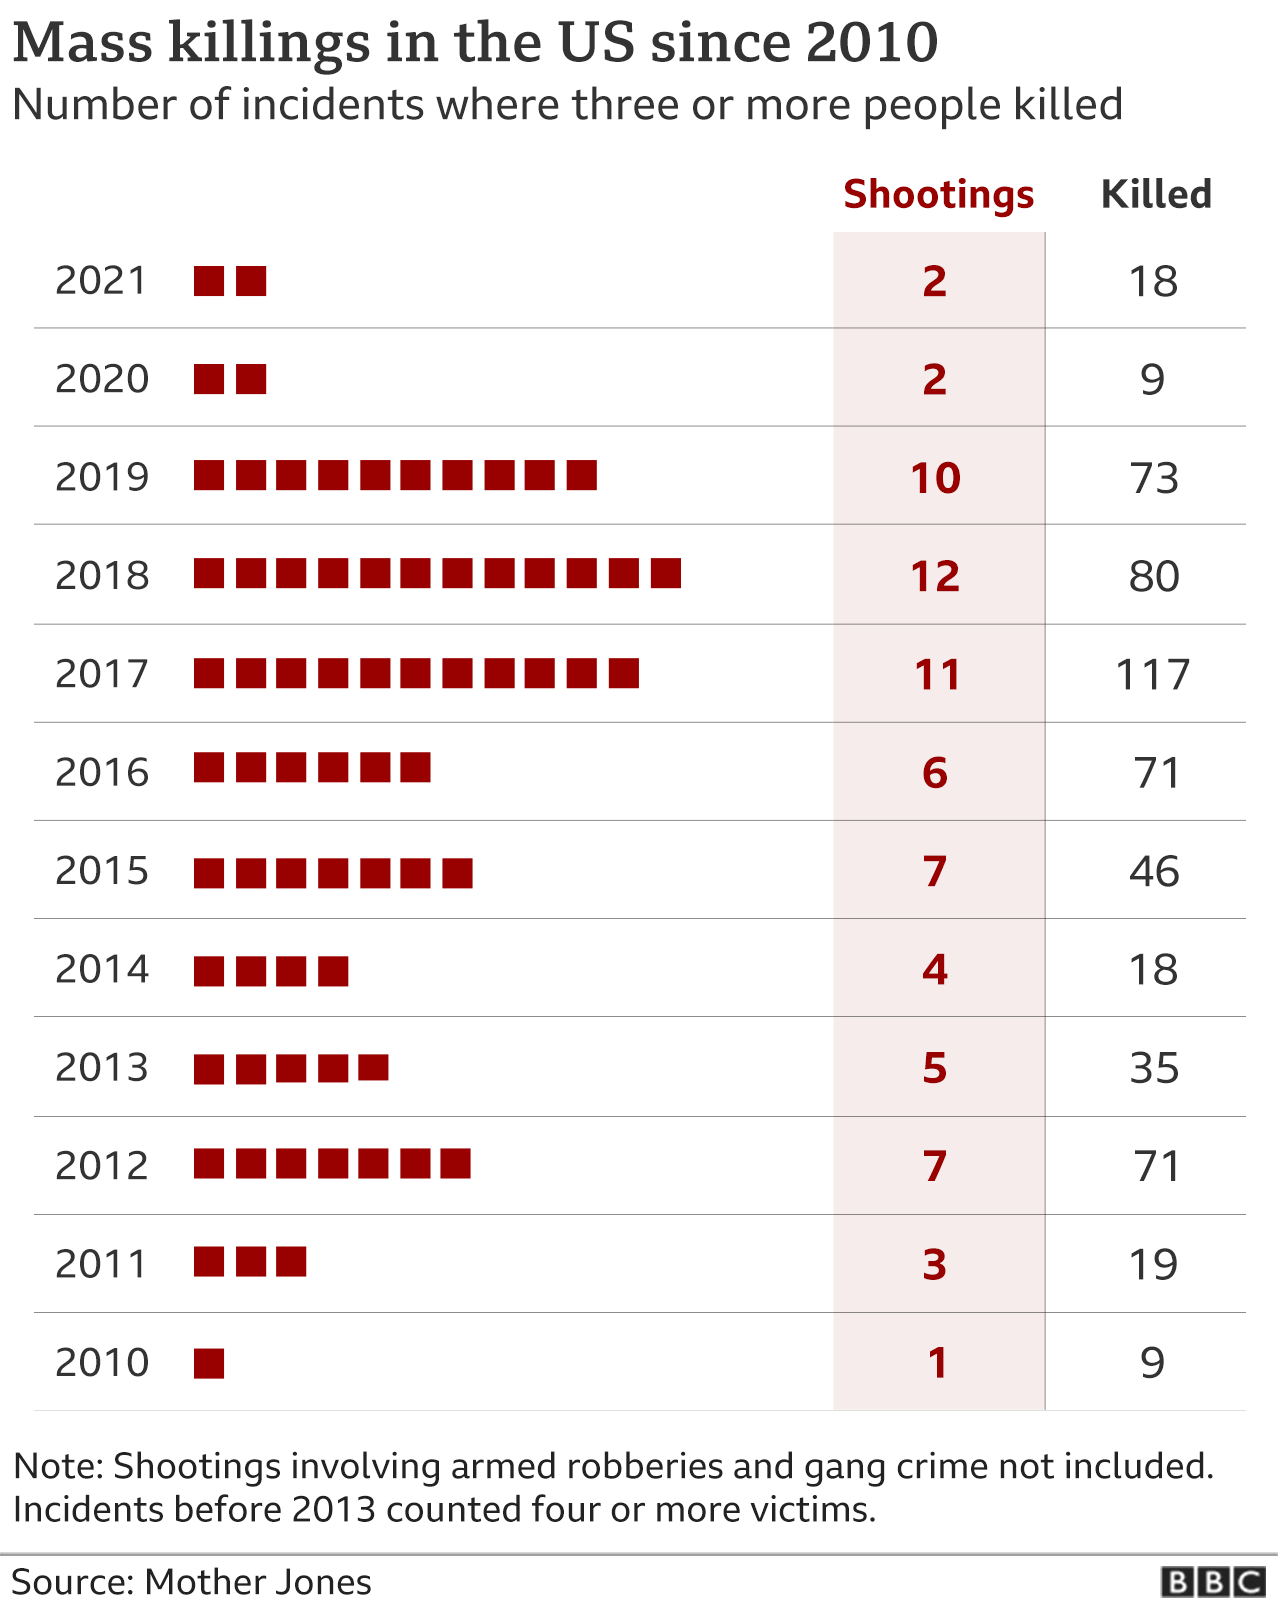 Mass shootings in the US since 2010